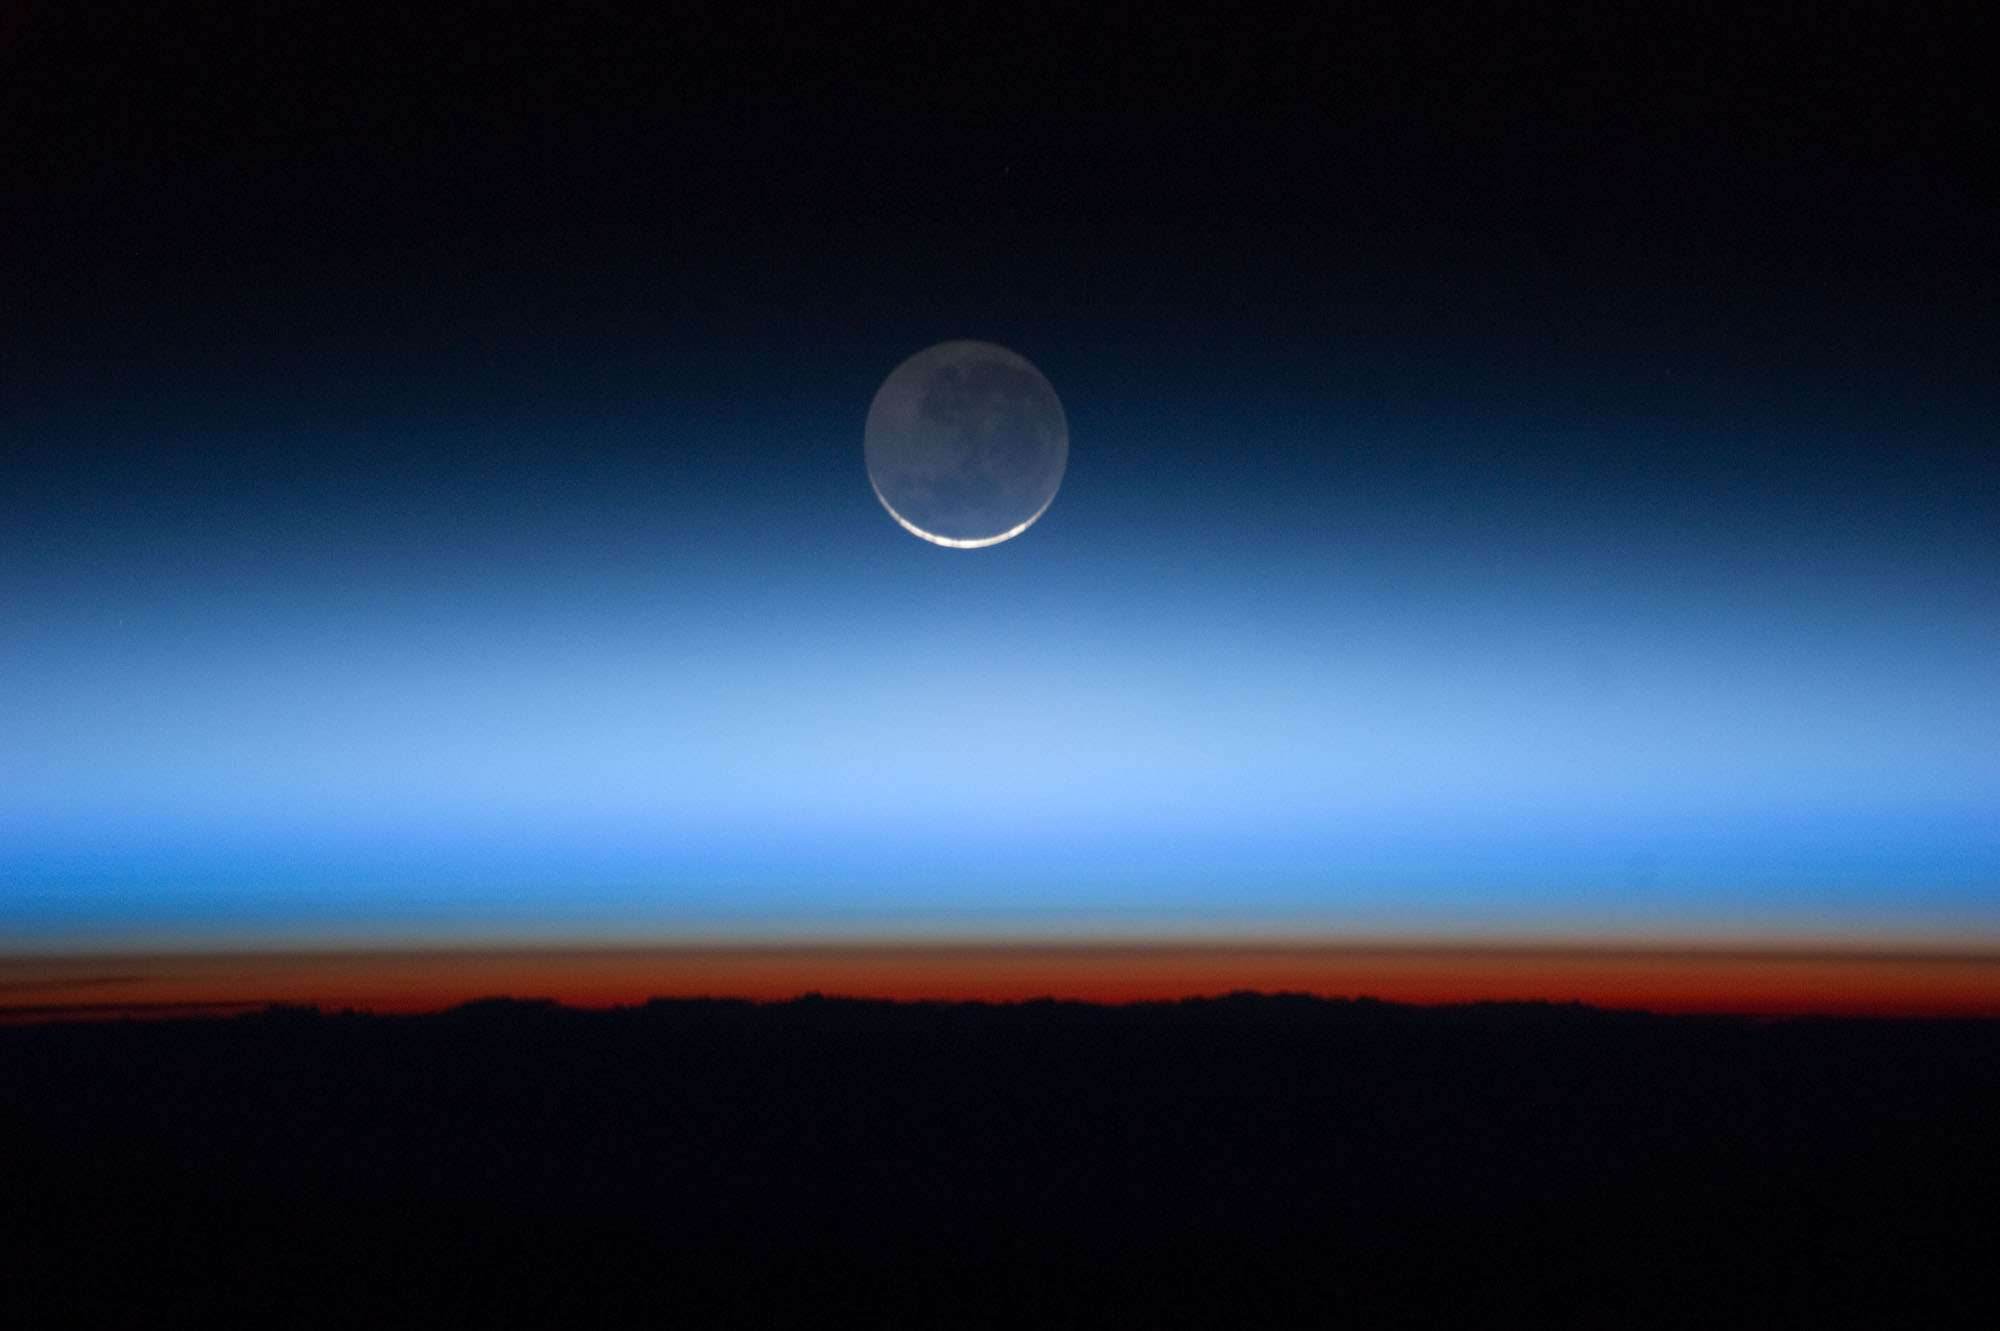 The sun is just below the horizon in this photo and creates an orange-red glow above the Earth's surface, which is the troposphere, or lowest layer of the atmosphere. The tropopause is the brown line along the upper edge of the troposphere. Above both are the stratosphere, higher atmospheric layers, and the blackness of space.